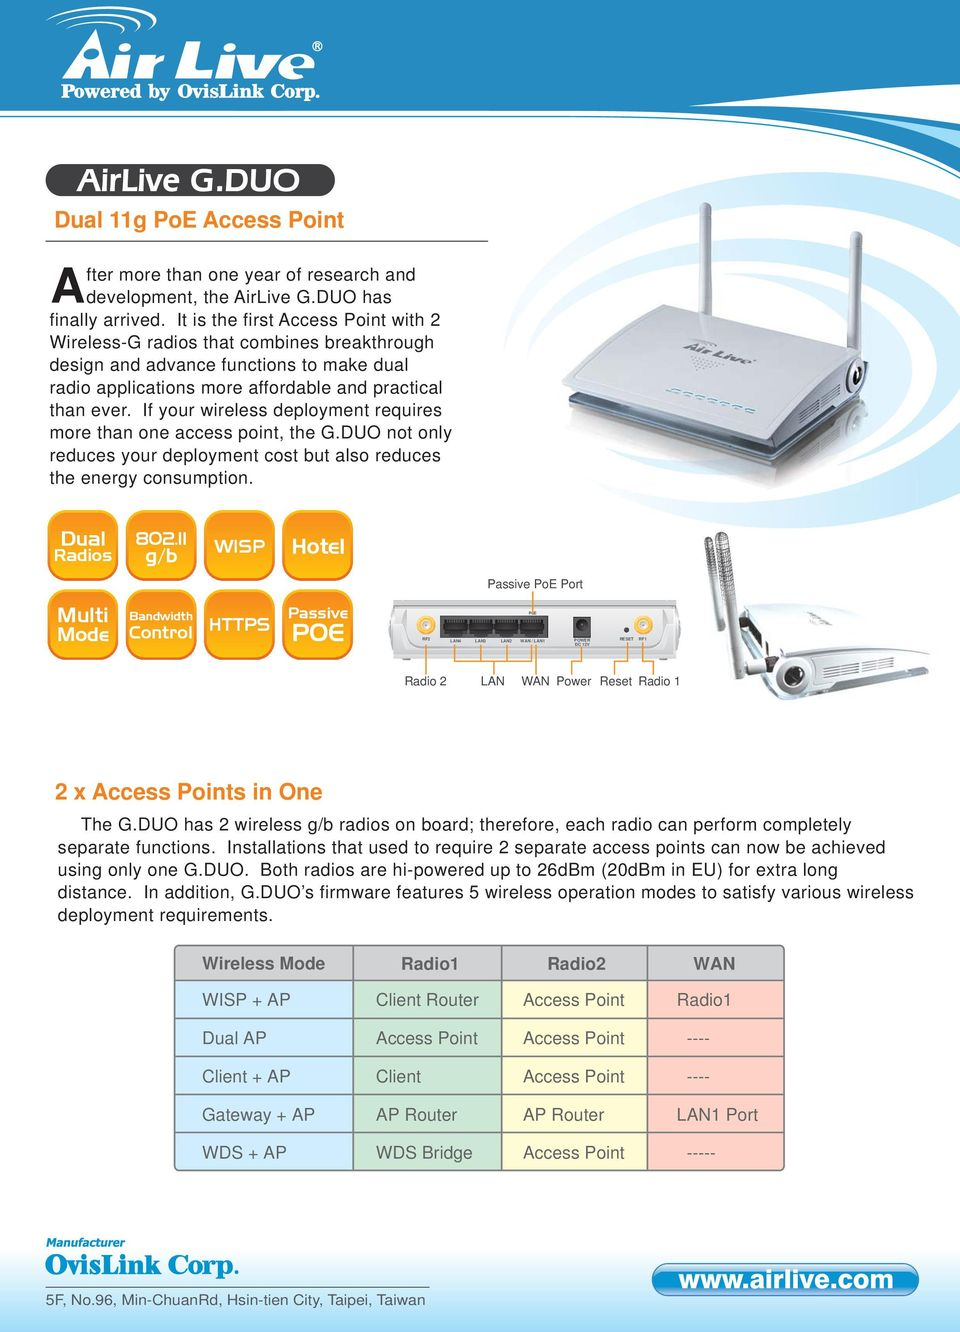 If your wireless deployment requires more than one access point, the not only reduces your deployment cost but also reduces the energy consumption. Dual Radios 802.